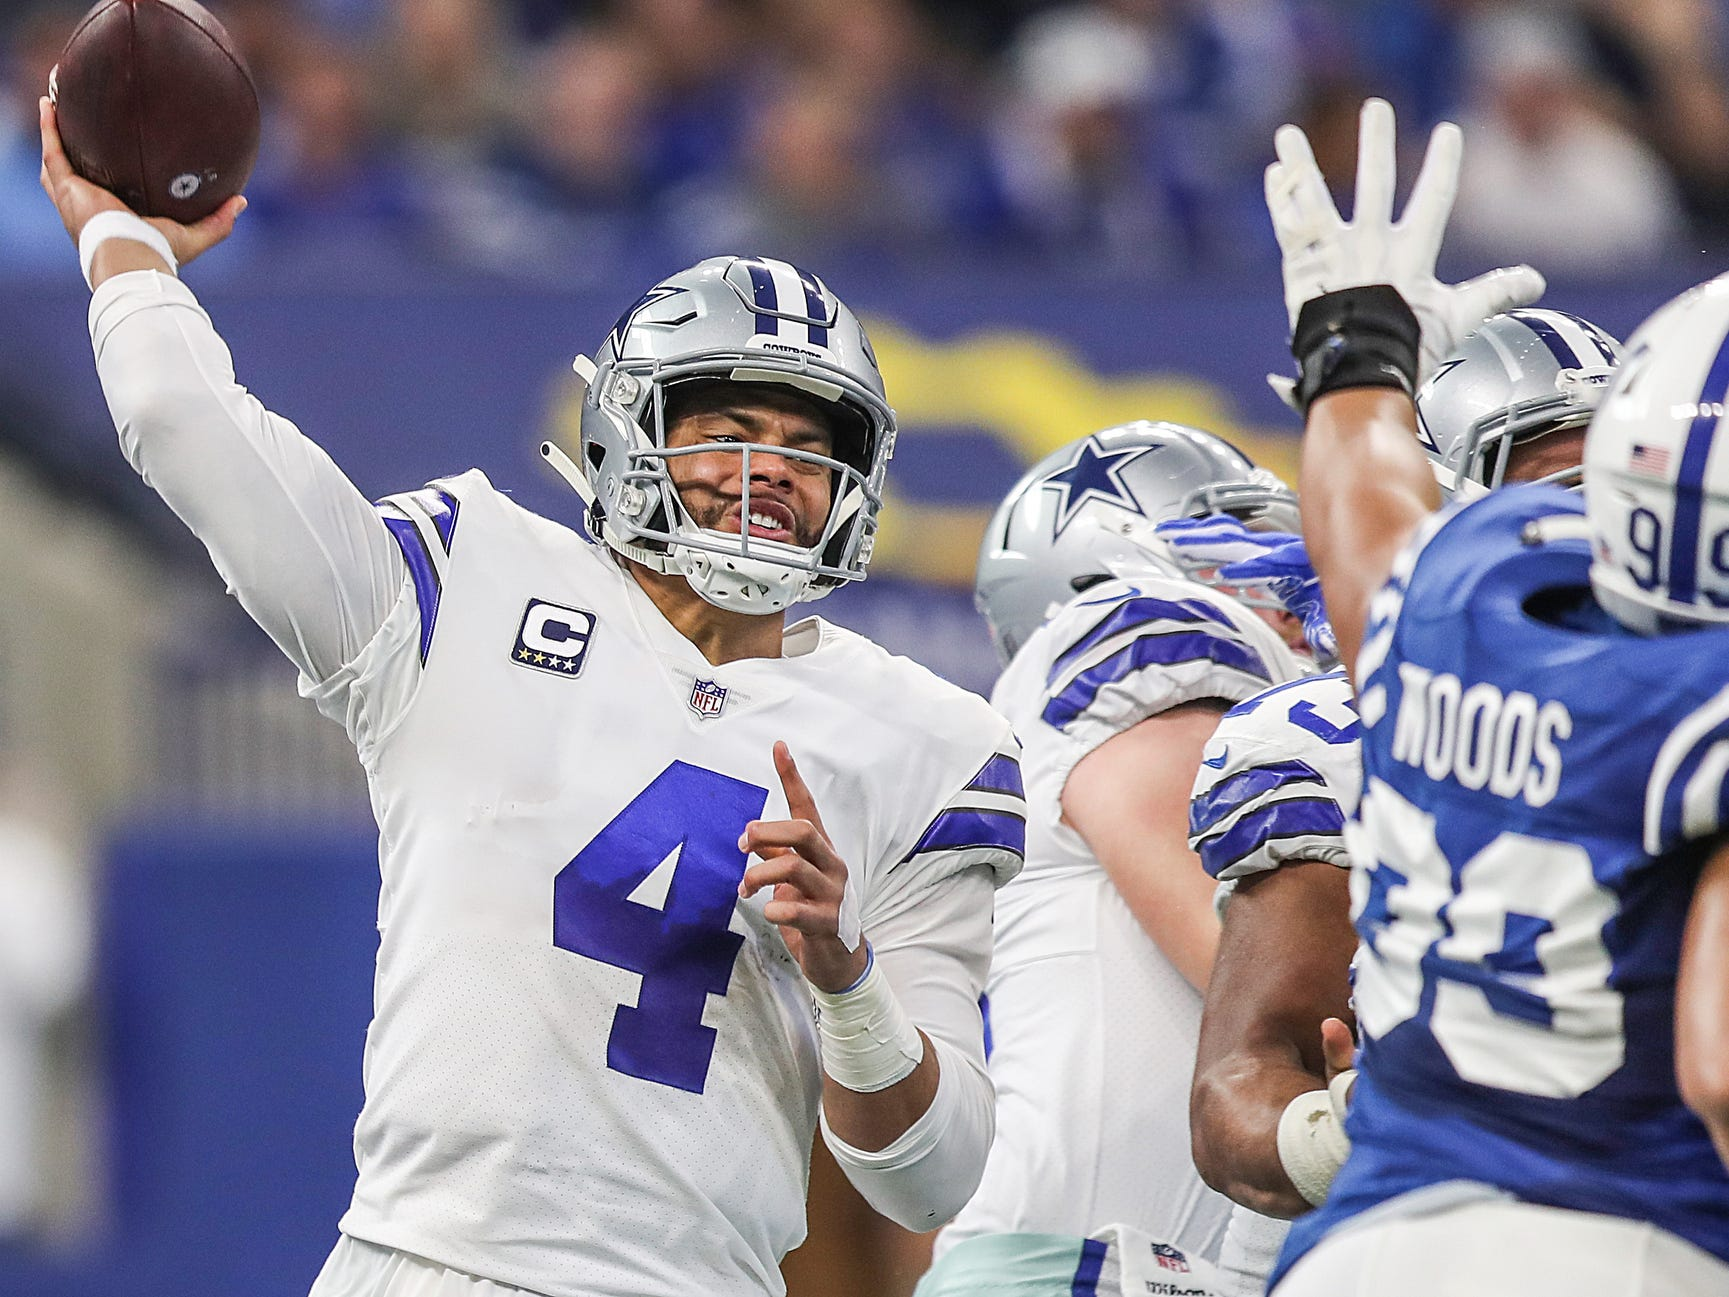 Dallas Cowboys quarterback Dak Prescott (4) is pressured by Colts defenders in the first half of the game at Lucas Oil Stadium in Indianapolis, Sunday, Dec. 16, 2018.